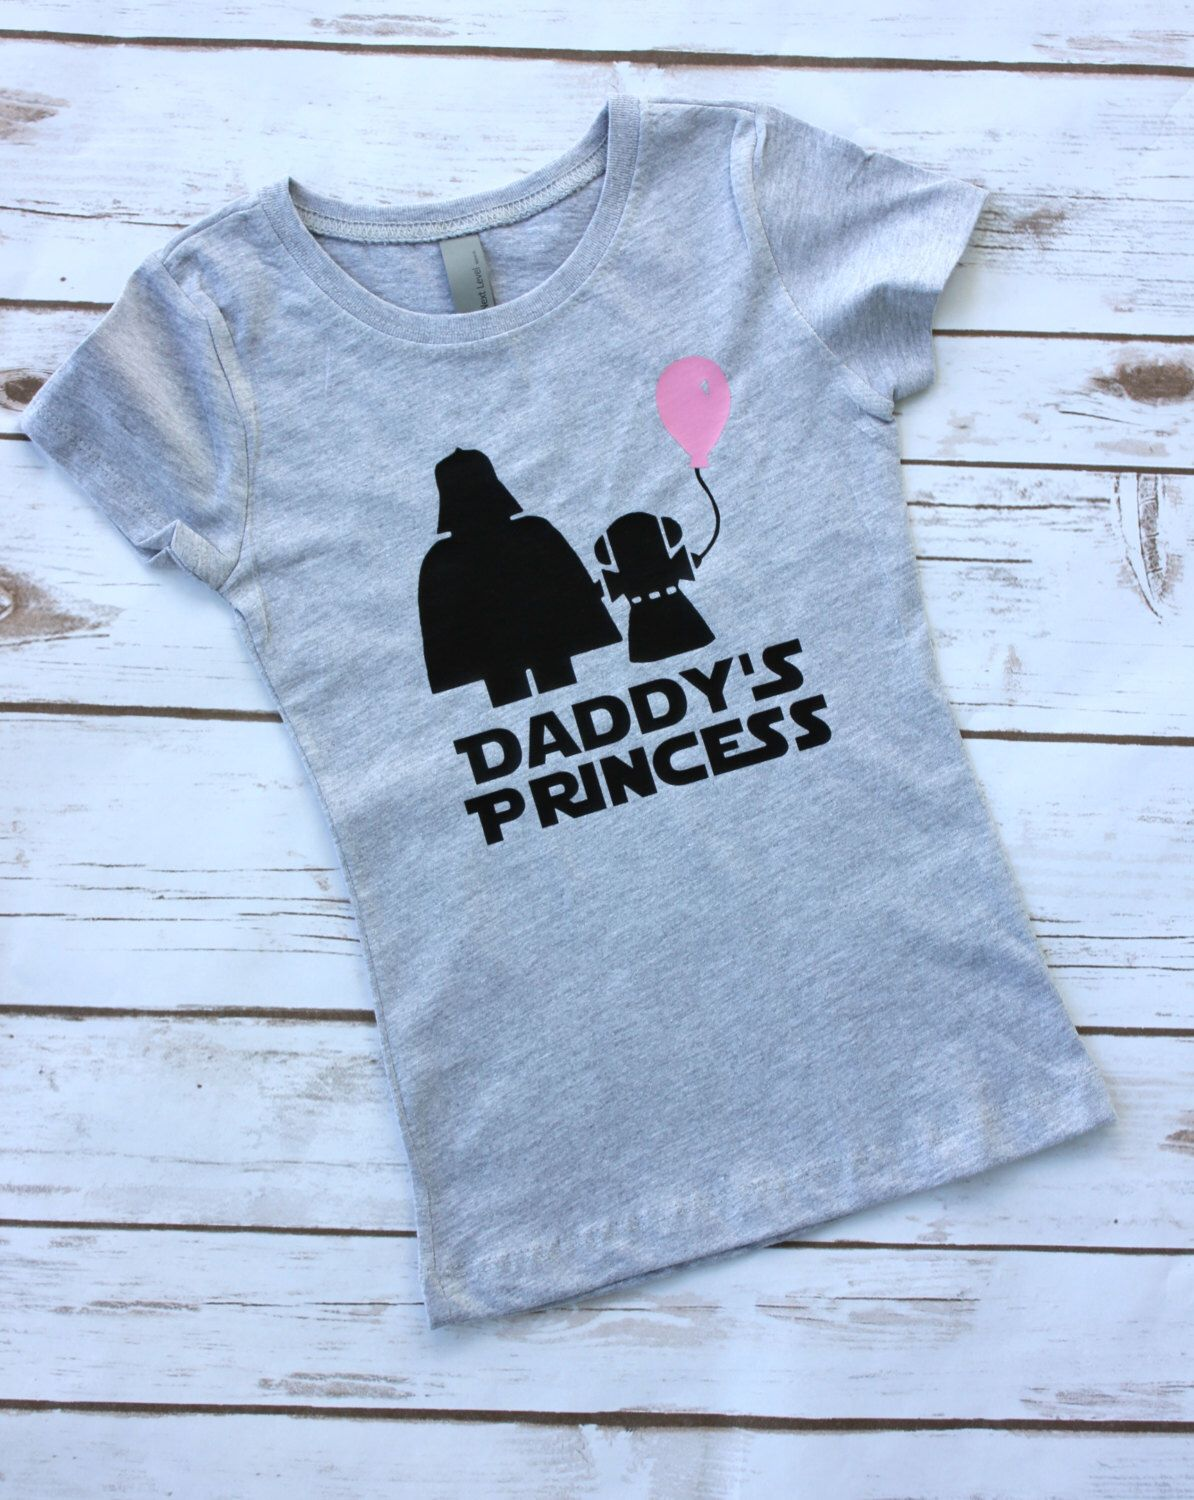 ddda945e Matching Father Daughter Shirts Best Dad Ever T Shirt Daddys Little  Princess Baby Bodysuit Matching Family Shirts First Fathers Day MD-427C